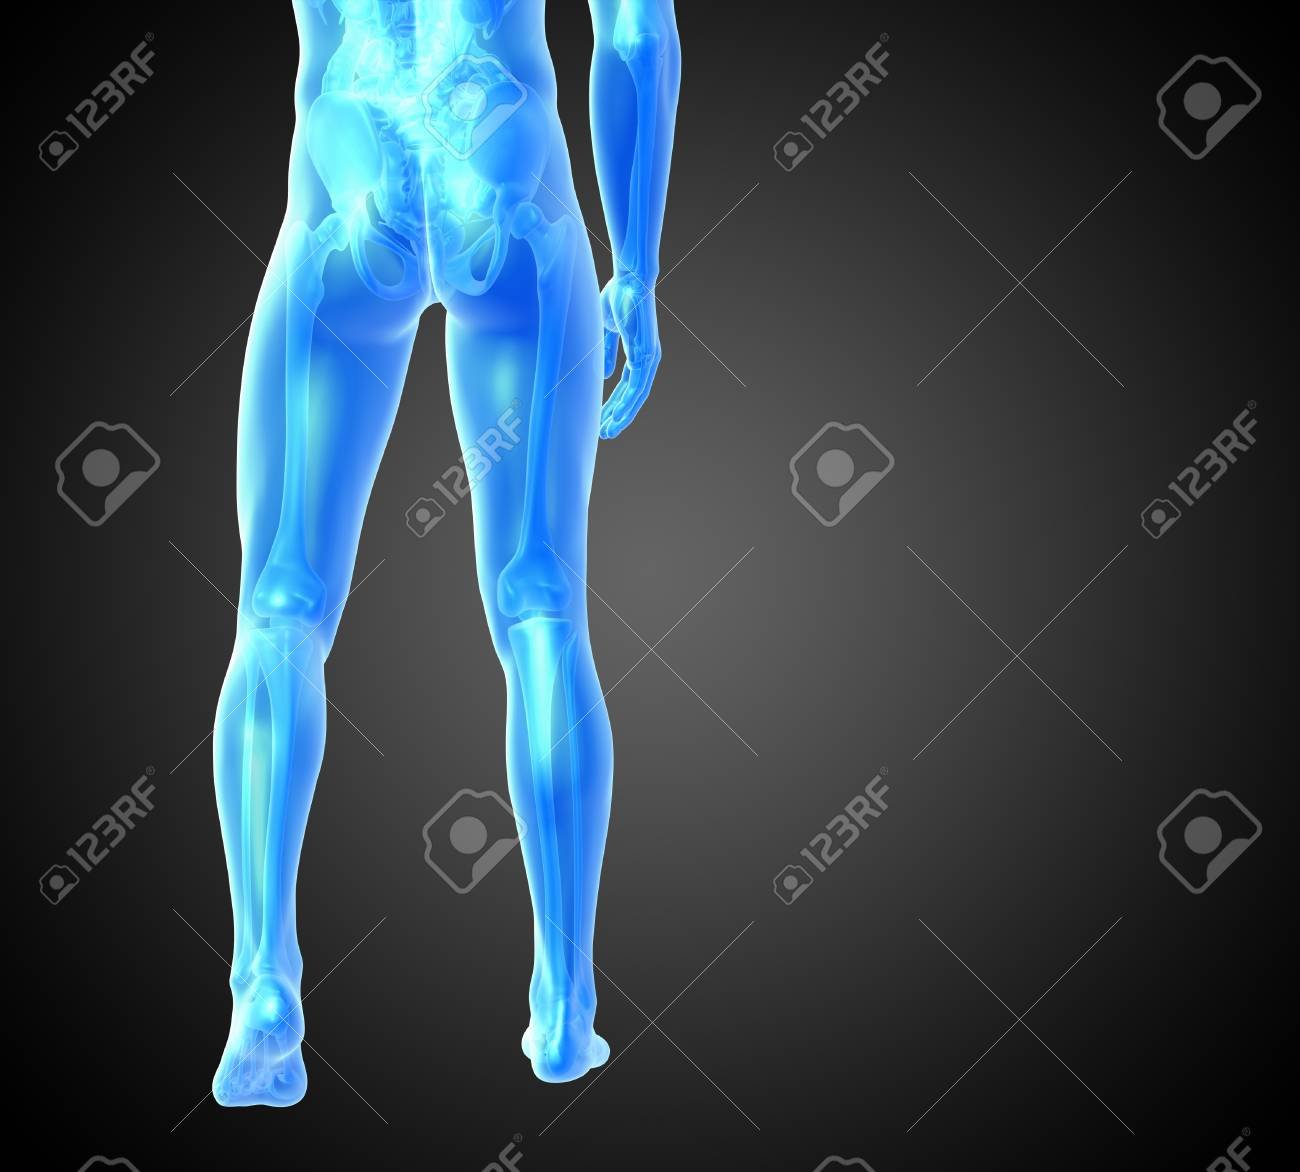 3d Render Medical Illustration Of The Human Anatomy Back View